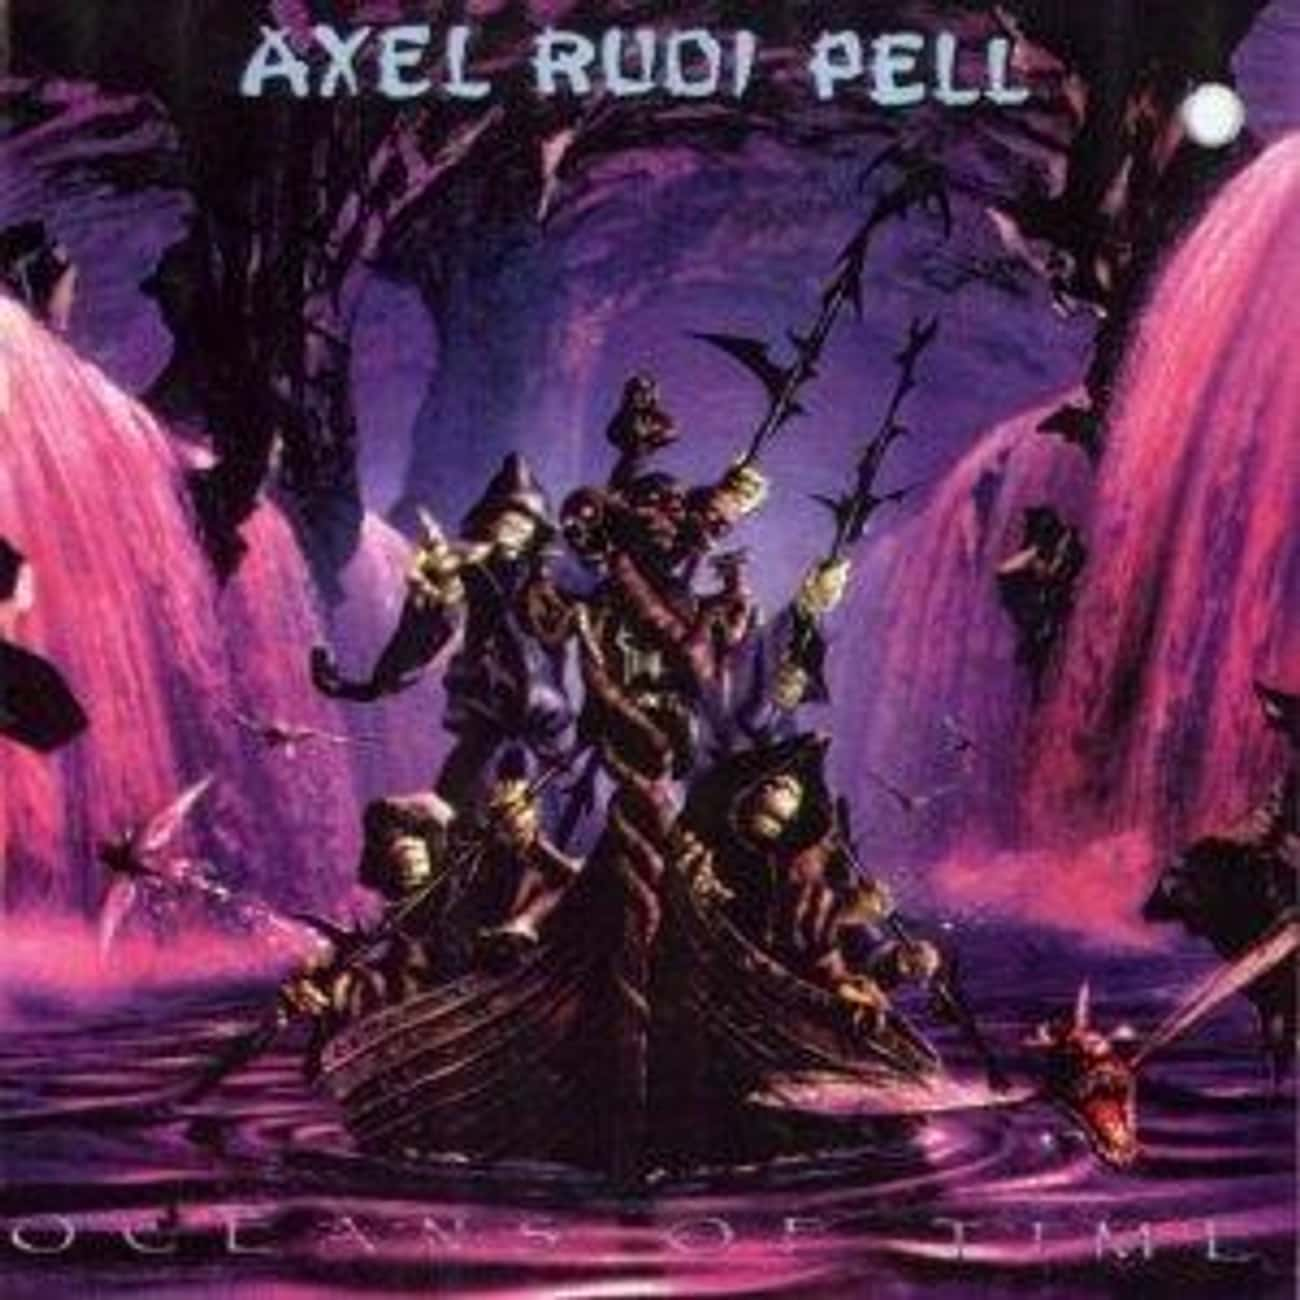 Oceans of Time is listed (or ranked) 1 on the list The Best Axel Rudi Pell Albums of All Time